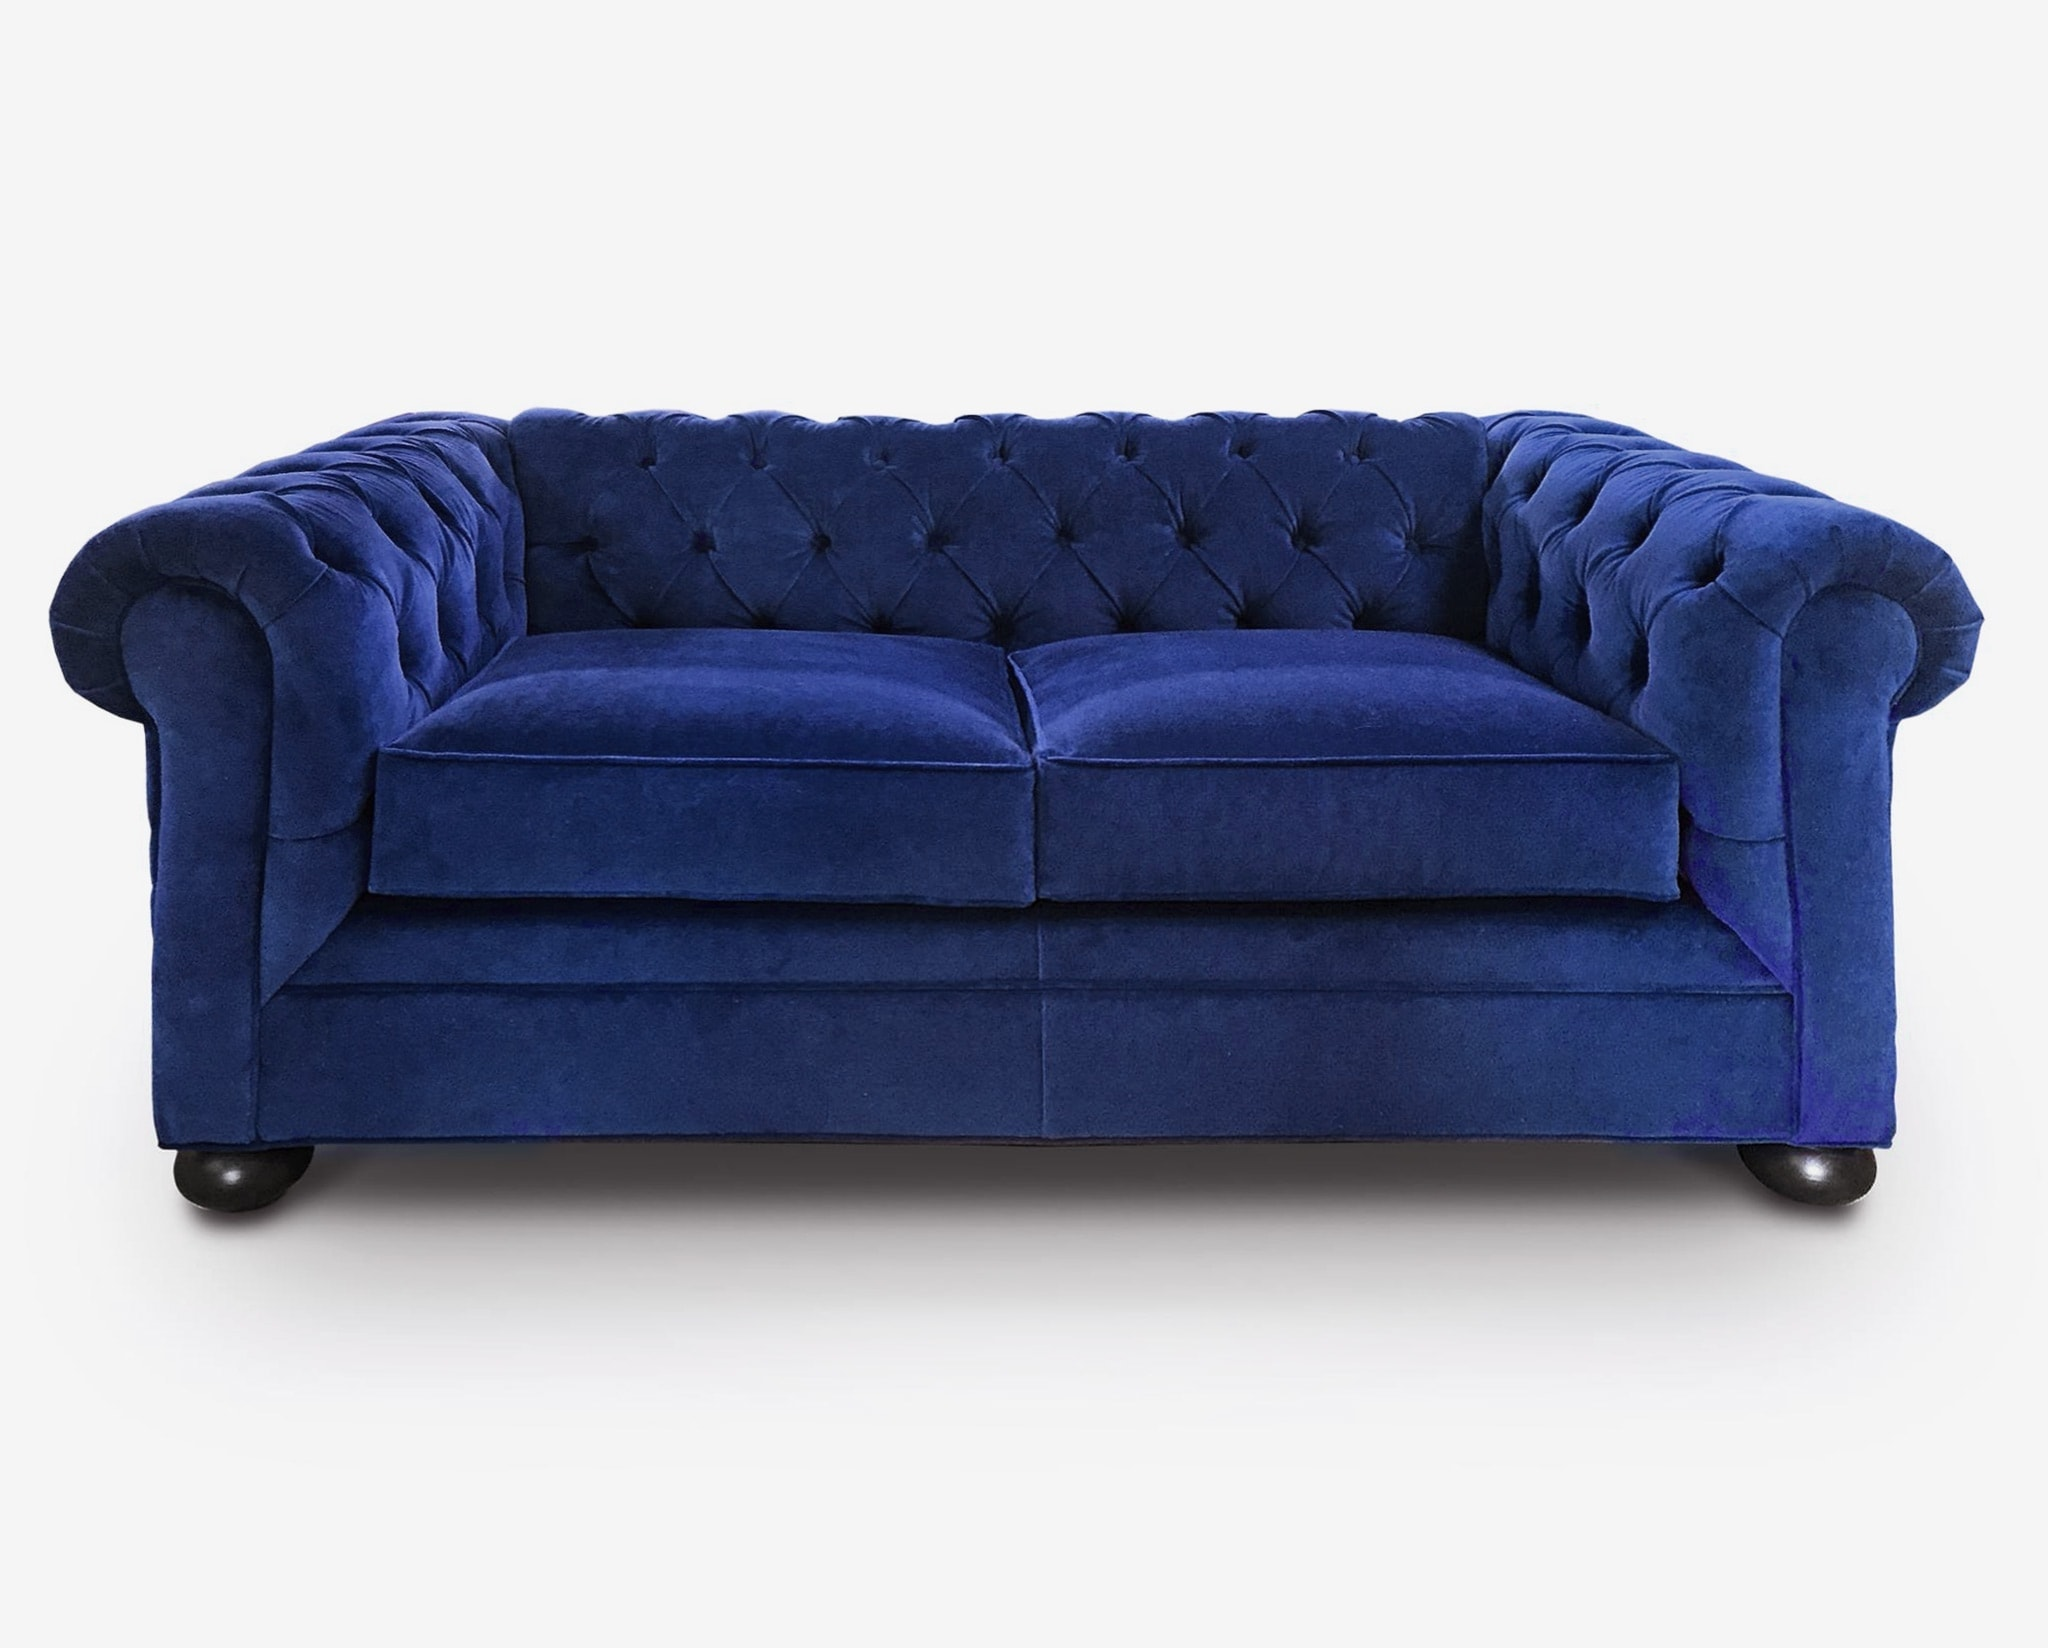 Irving Traditional Chesterfield Sofa In Custom Sapphire Blue Velvet Of Iron Oak